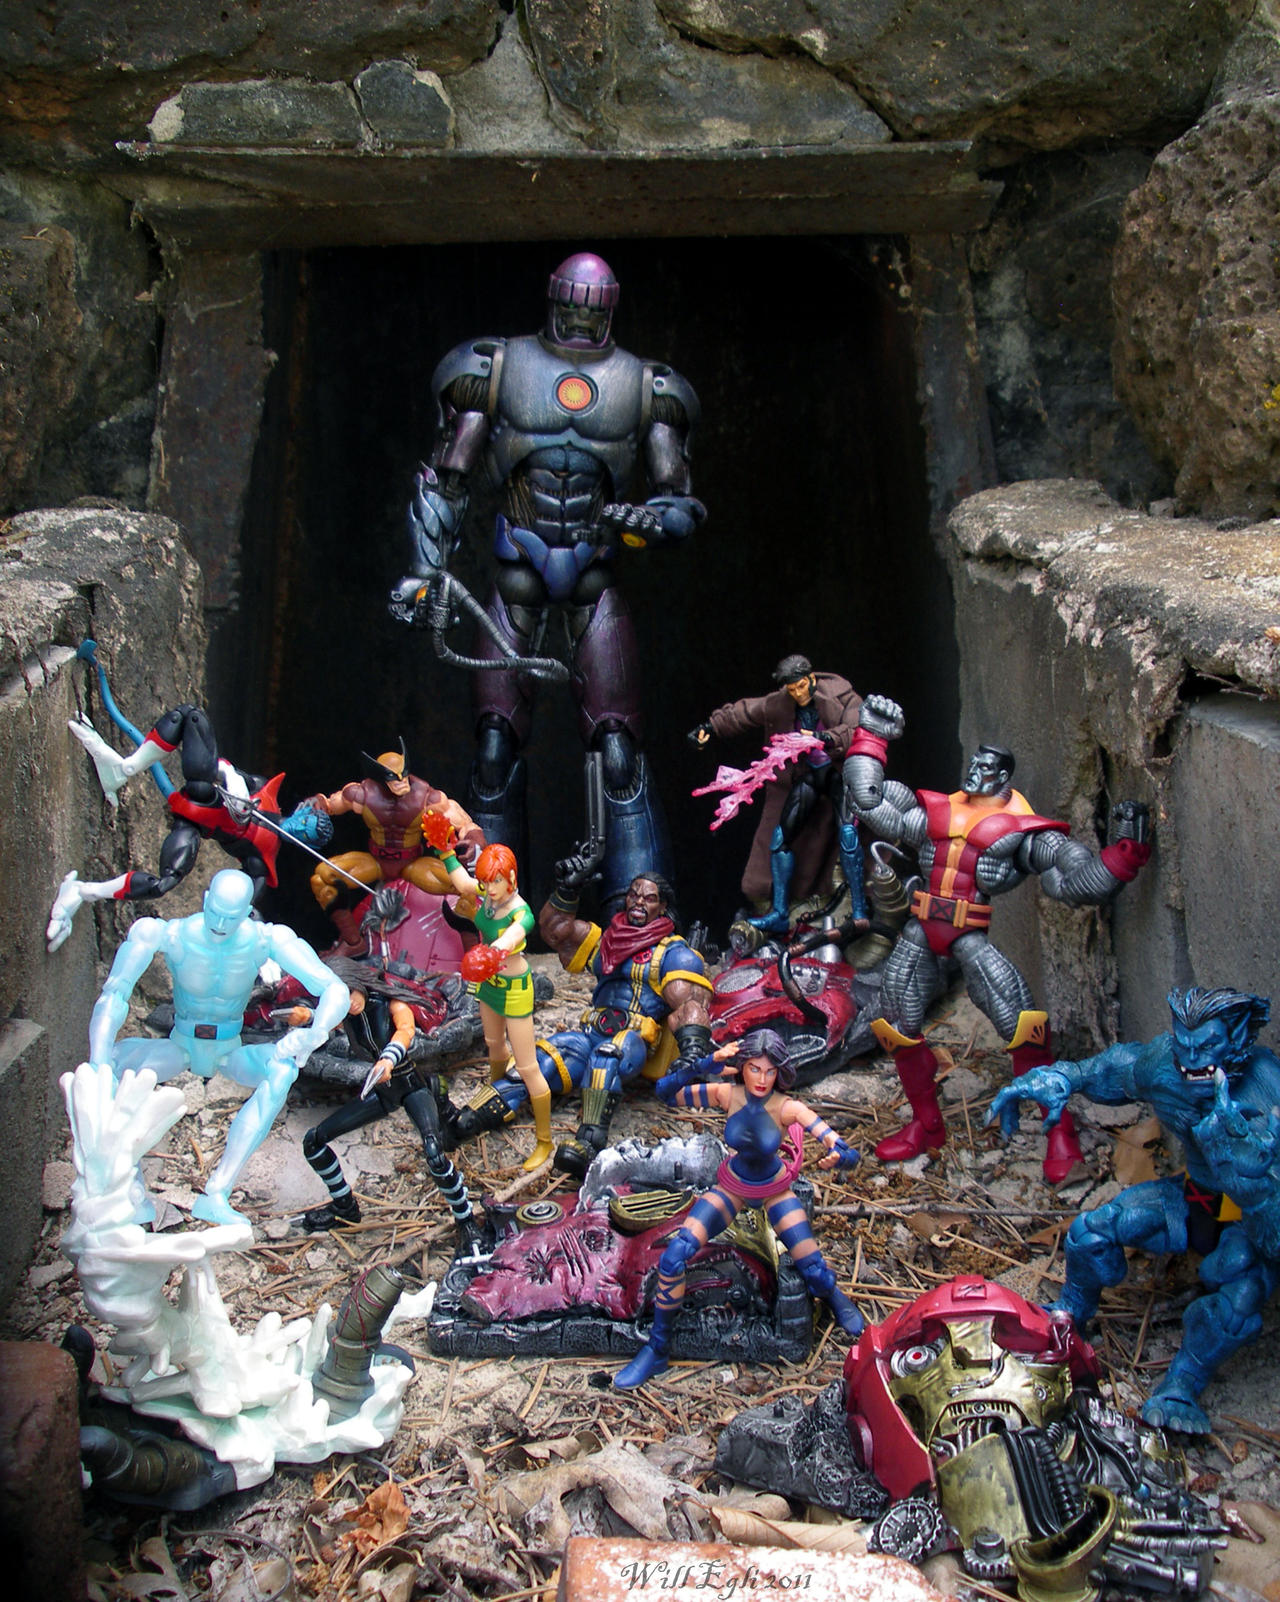 X-Men Unite - Marvel Legends Collecction by SurfTiki